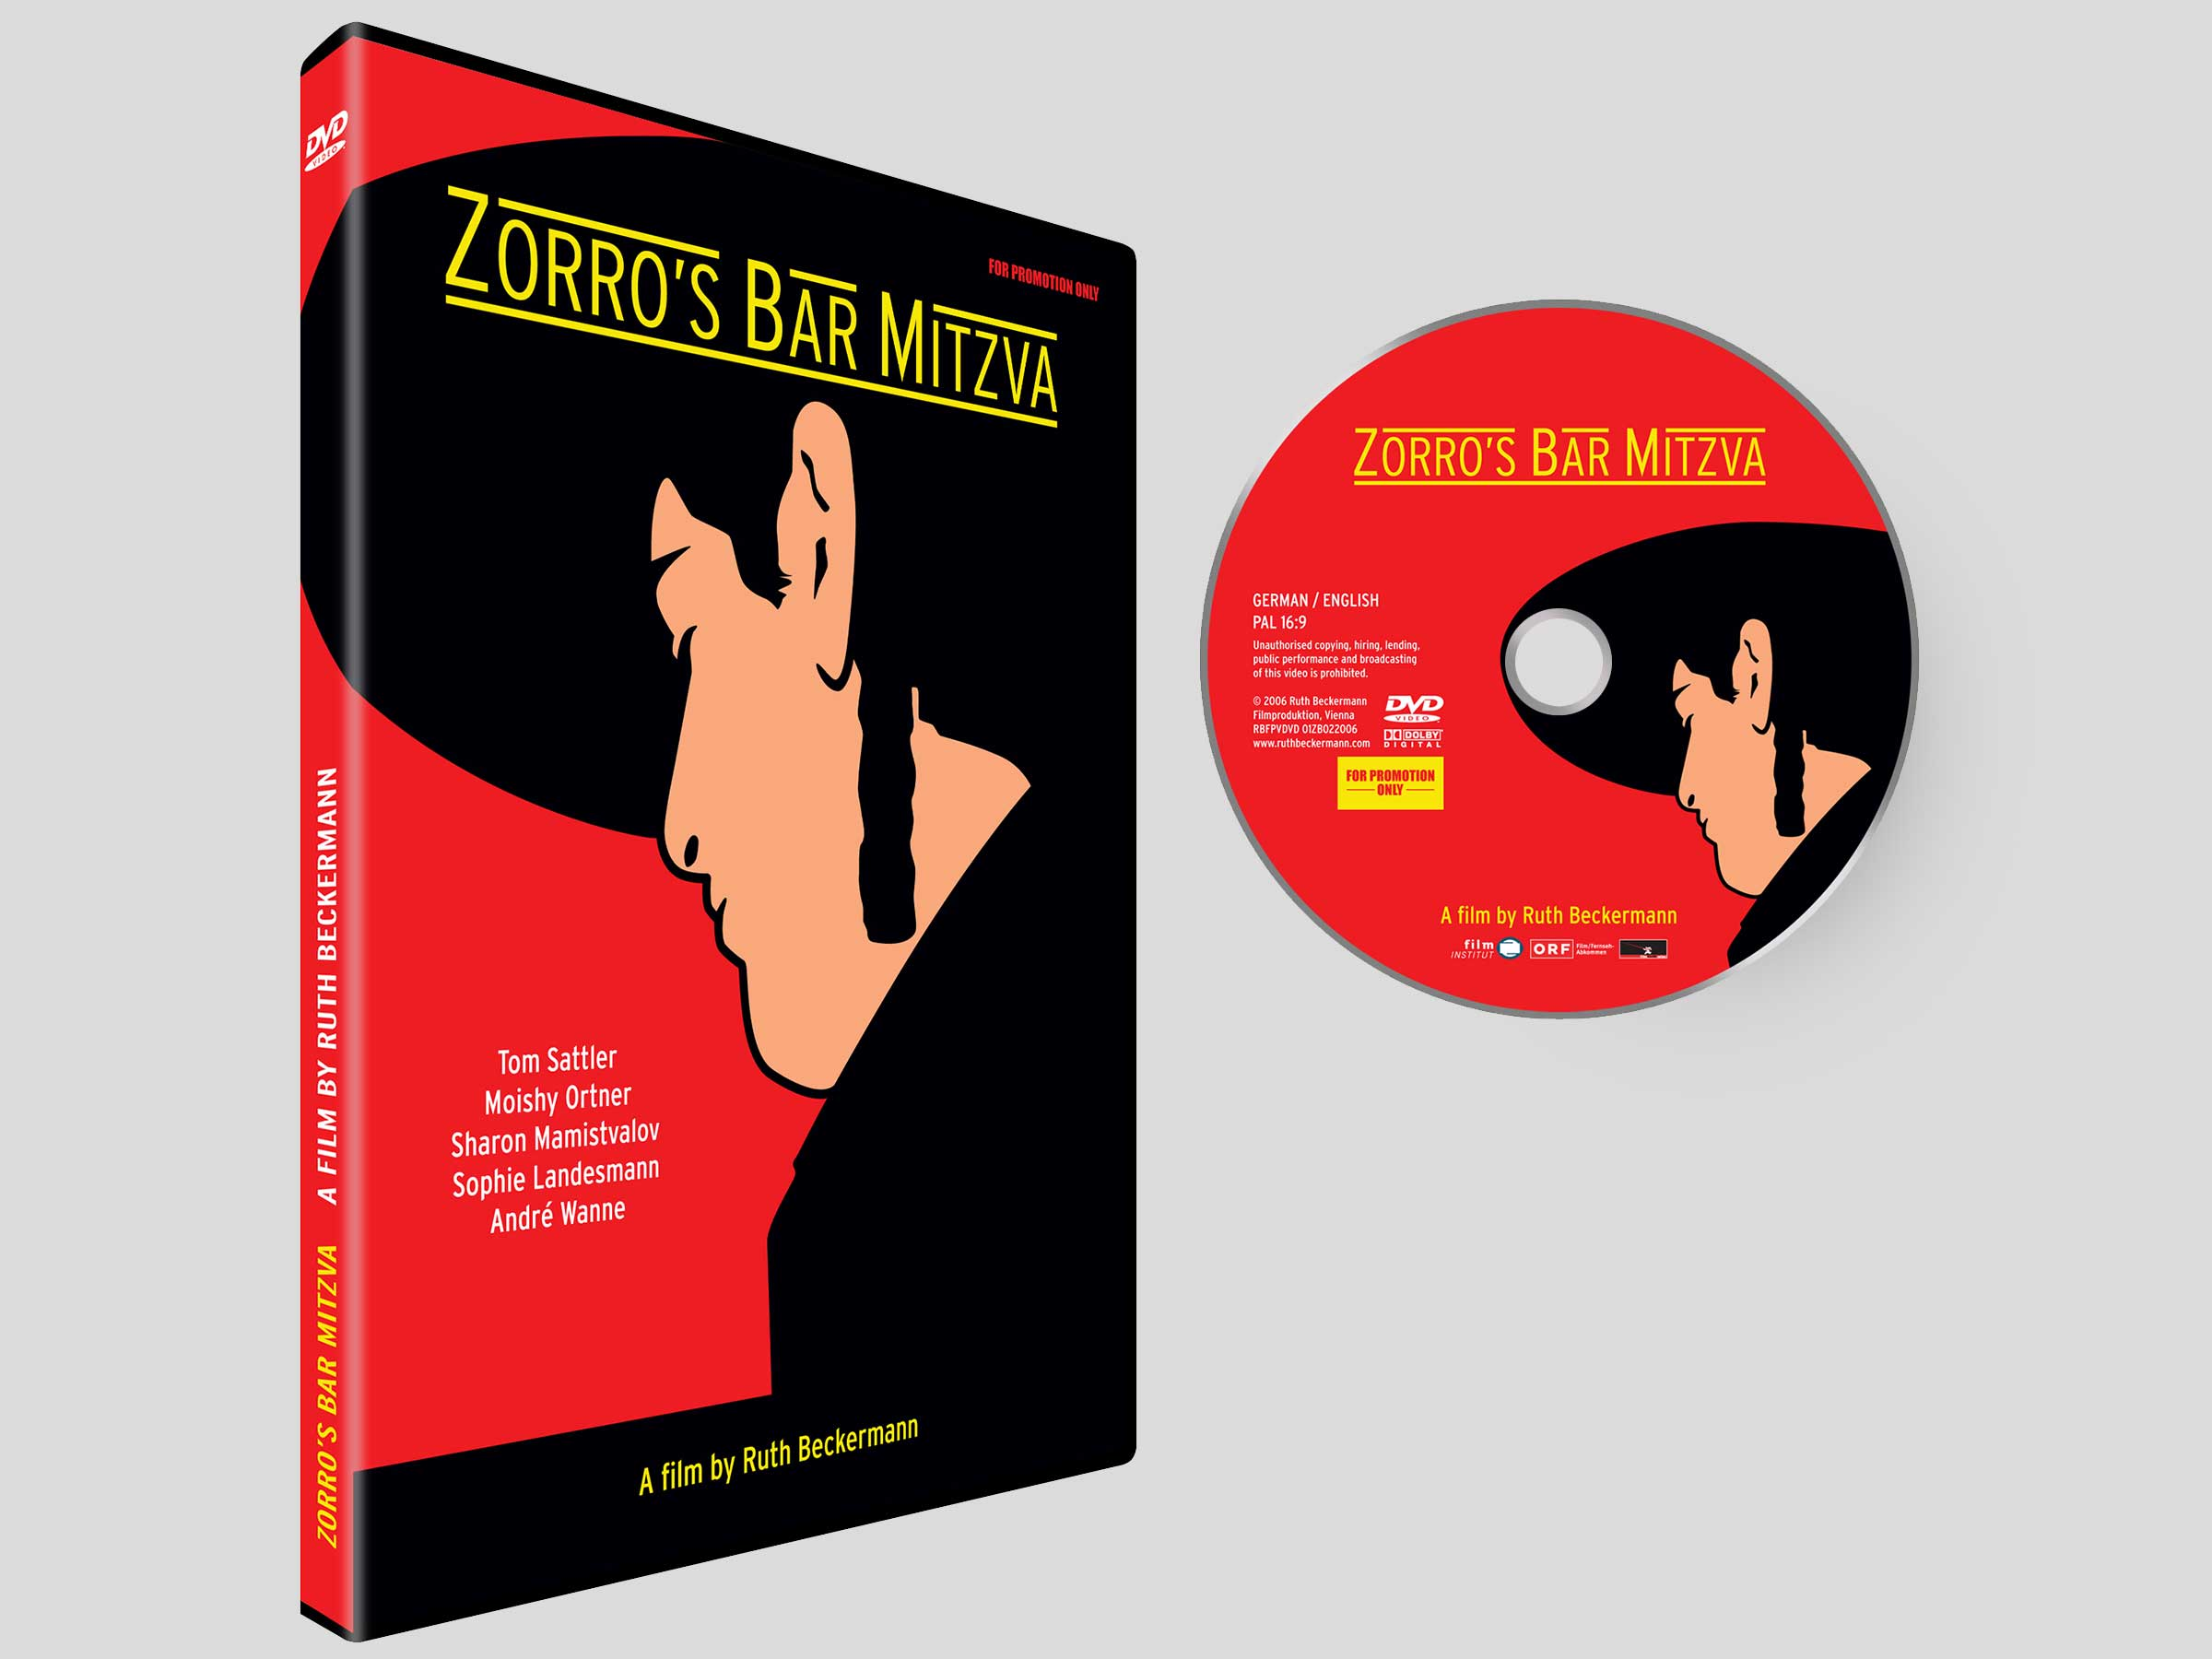 zorros-bar-mizwa-filmladen-ruth-beckermann-DVD